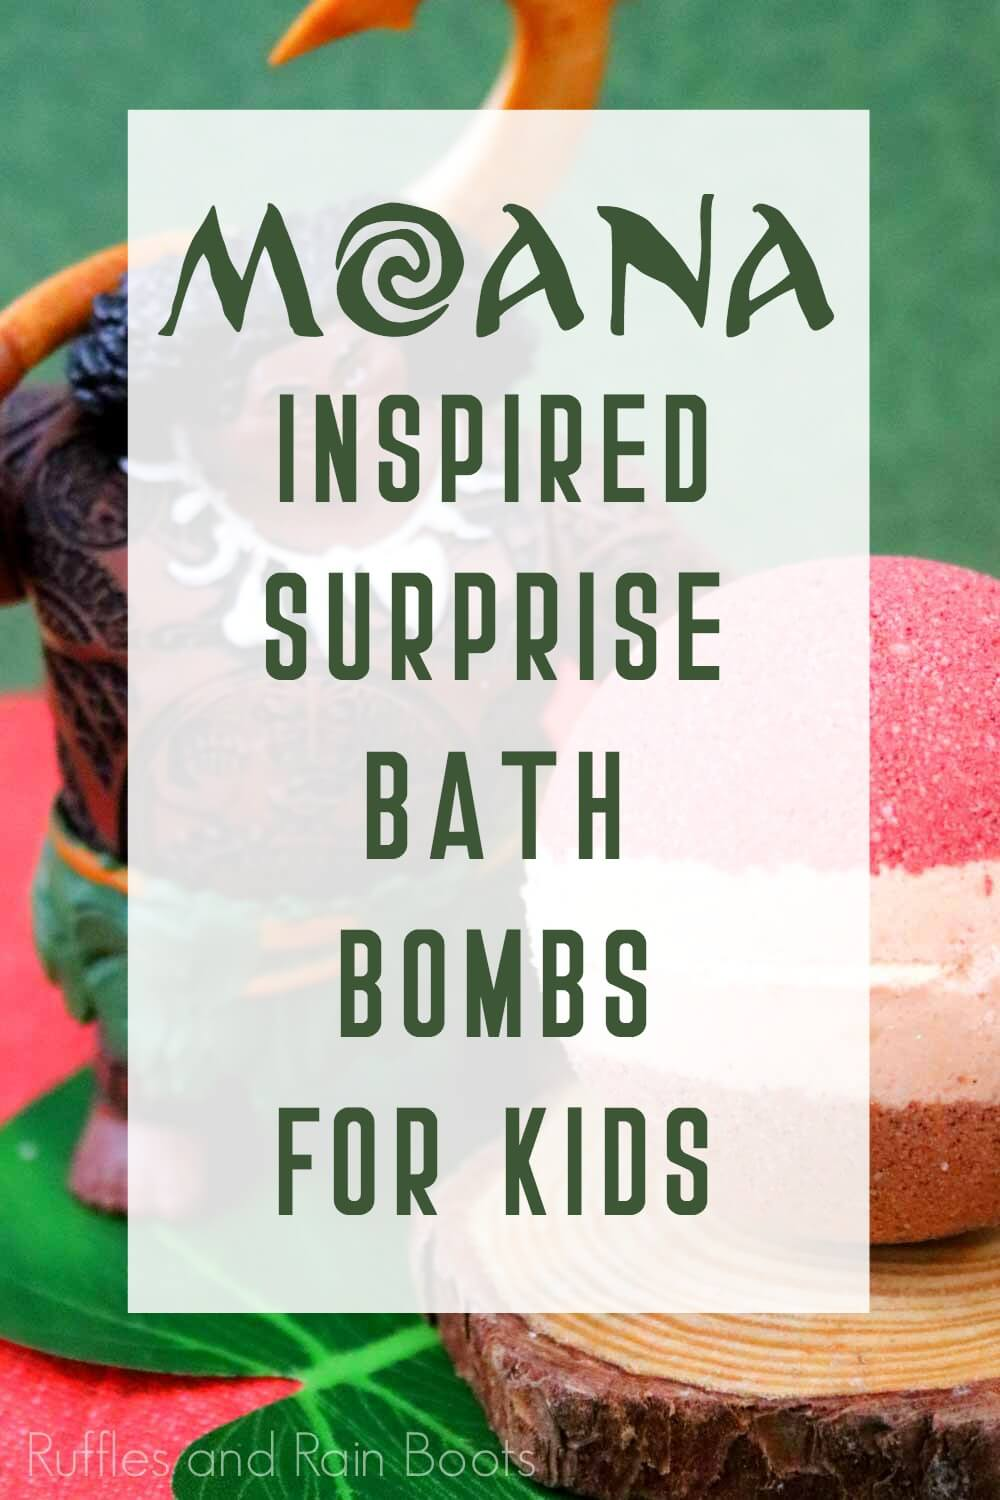 moana inspired bath bombs with surprise inside overlaid with text which reads moana inspired surprise bath bombs for kids